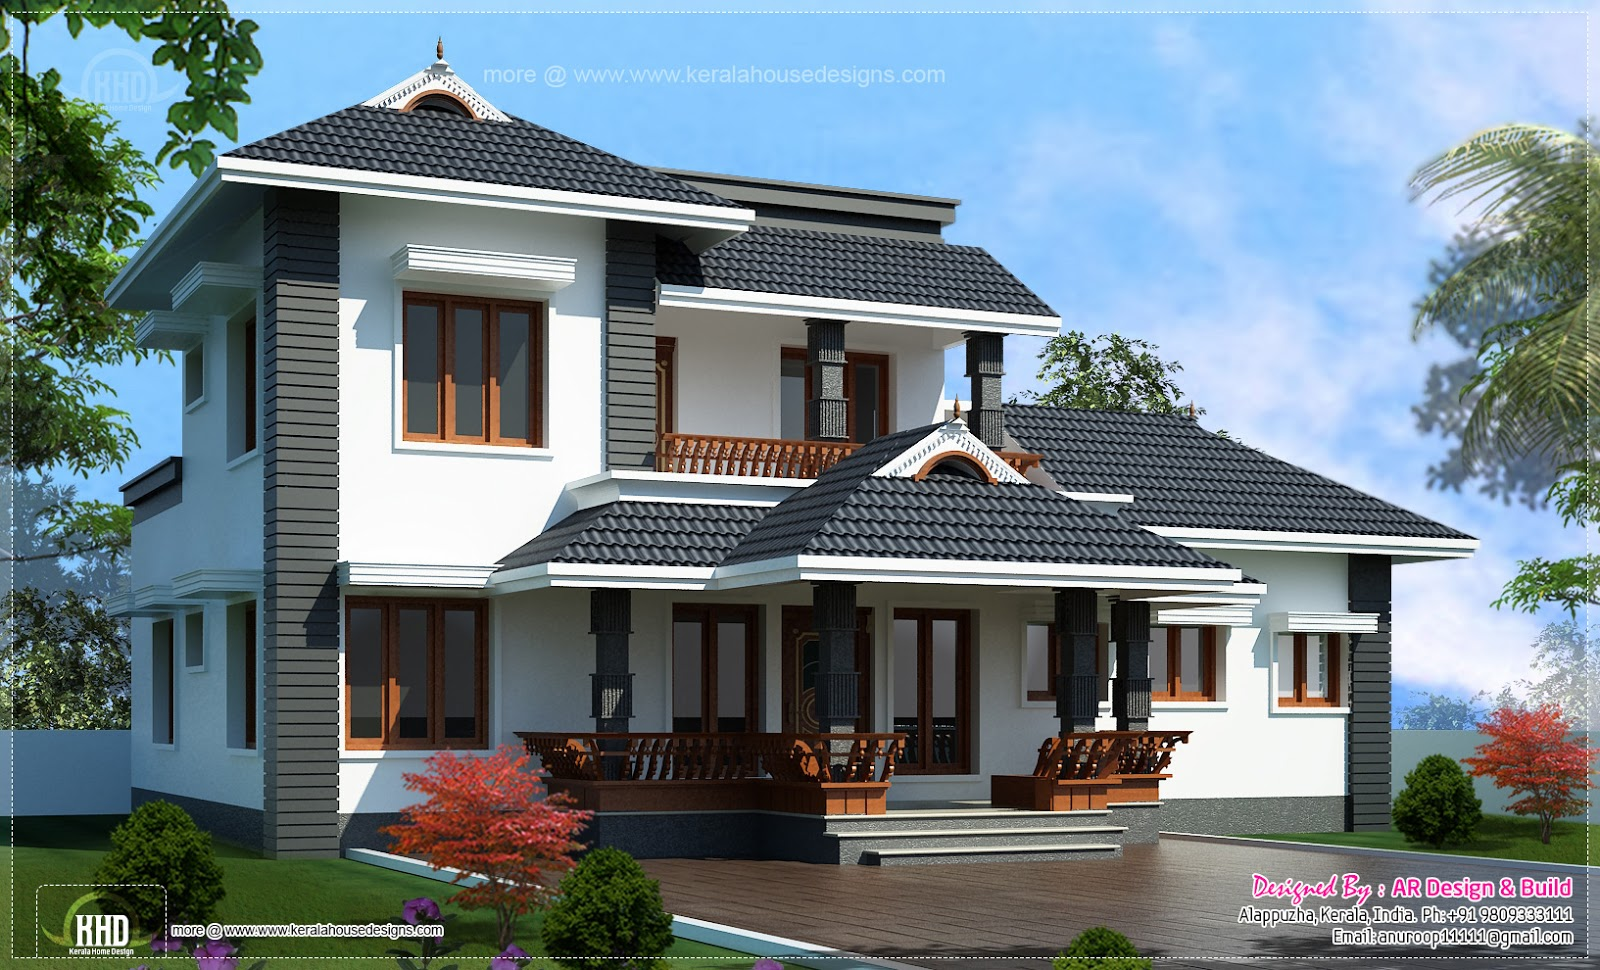 2000 sq ft Kerala residence. 2000 sq feet 4 bedroom sloping roof residence   Kerala home design